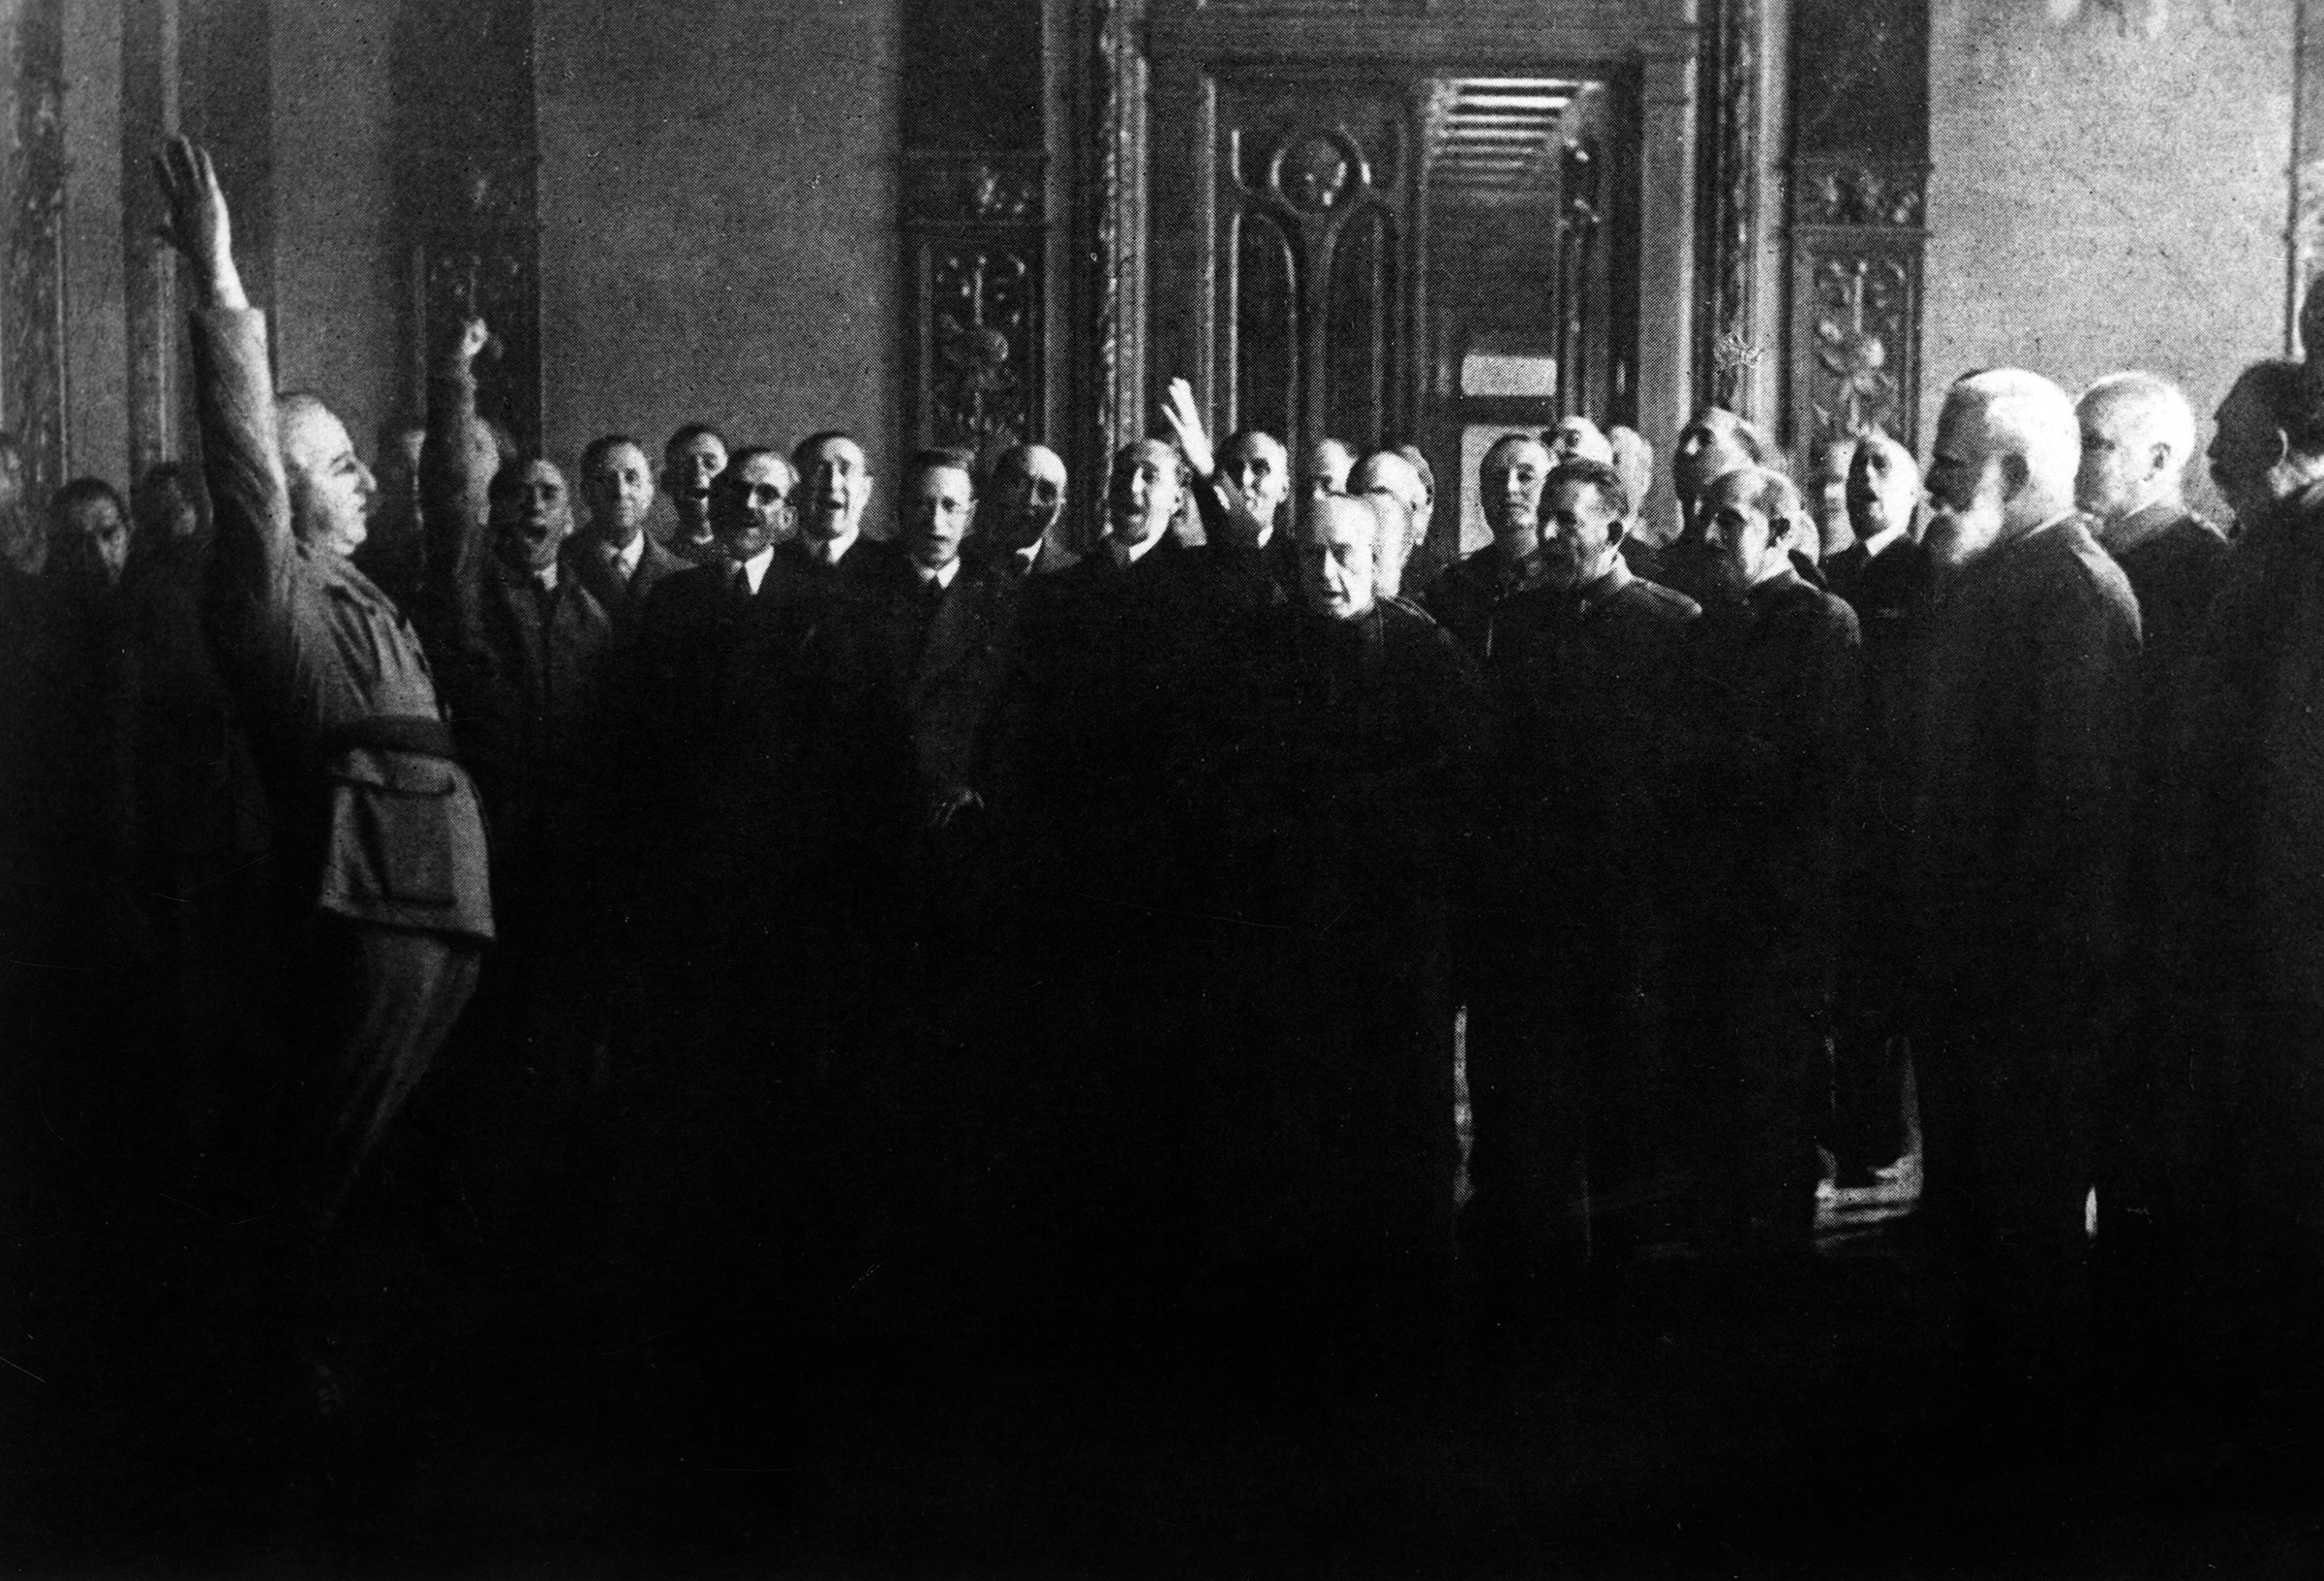 General Francisco Franco swearing allegiance to Spain in Oct. 1936.